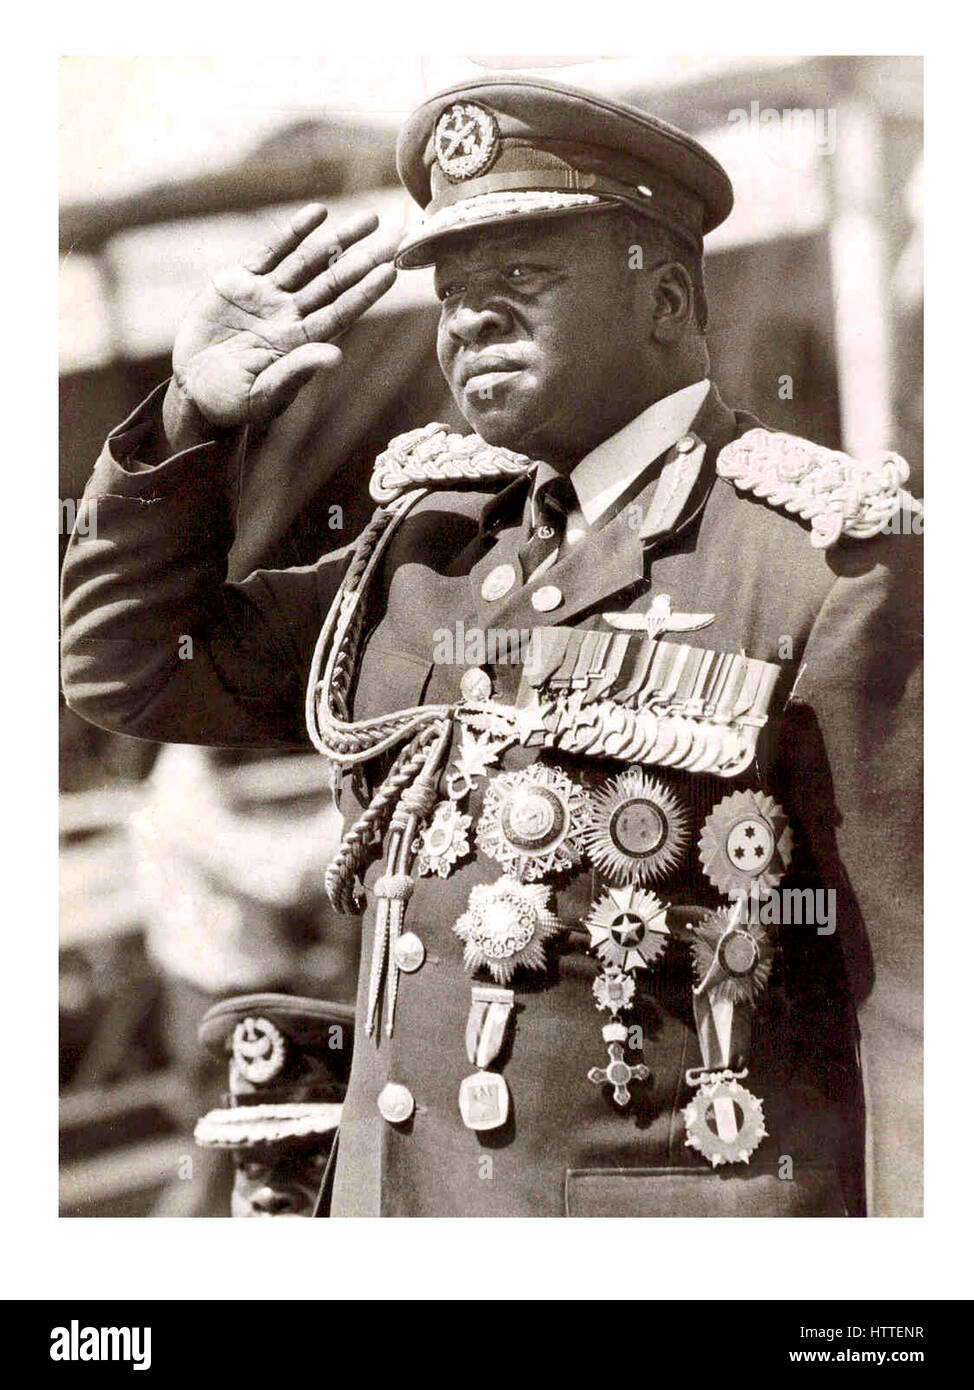 Idi Amin Dada President of Uganda 1971-1979 wearing self awarded medals for valour and service - Stock Image